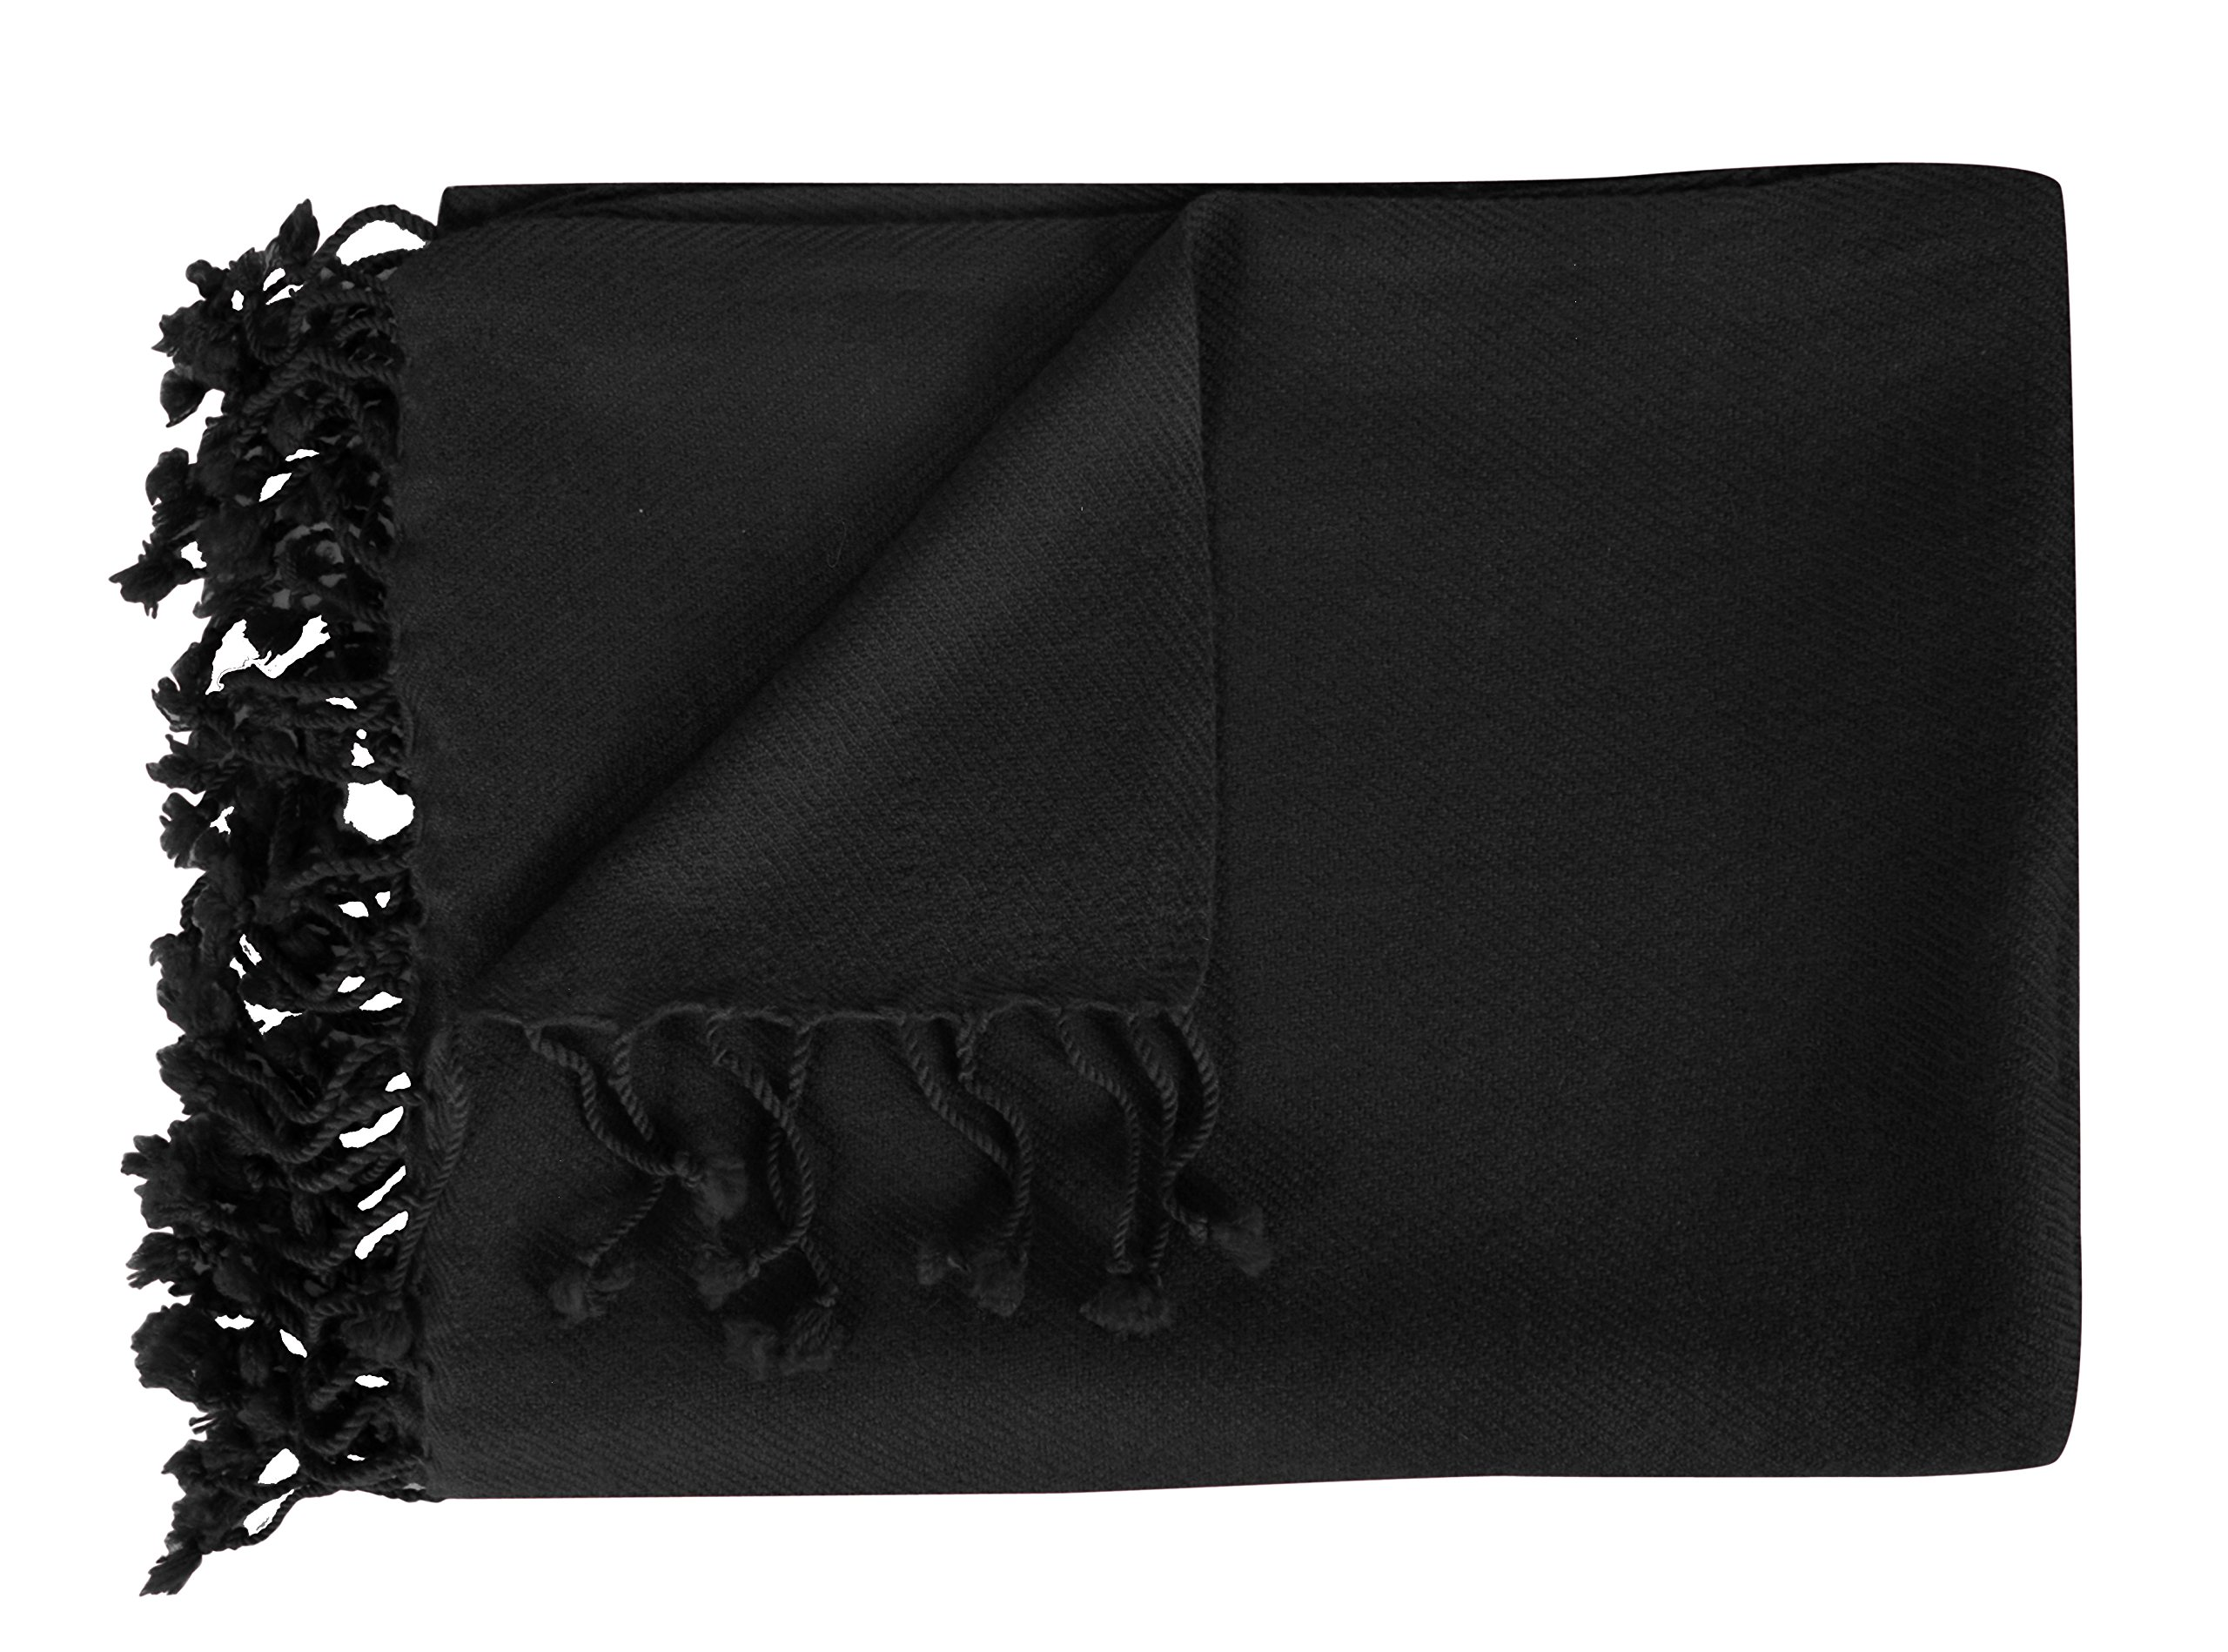 Peach Couture Home Collection Luxuriously Warm and Soft Cashmere Throw Blanket 50 x 60 in (Ebony) by Peach Couture